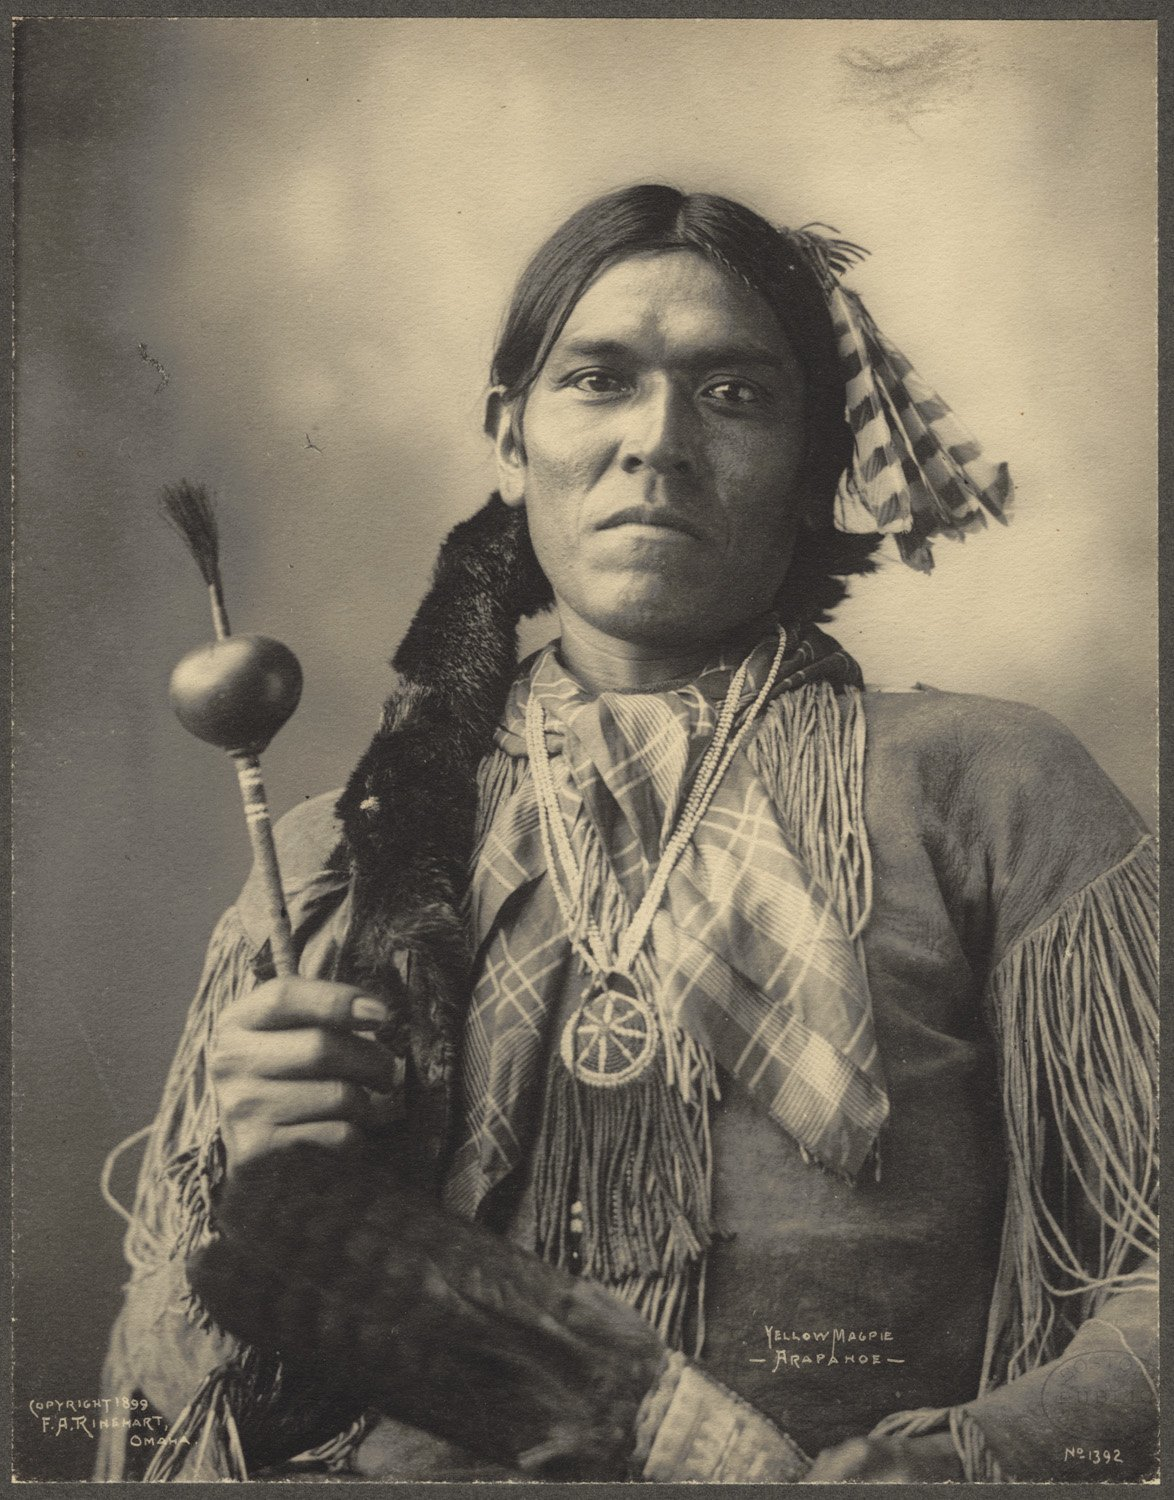 Yellow Magpie, Arapahoe, 1899. (Photo by Frank A. Rinehart)